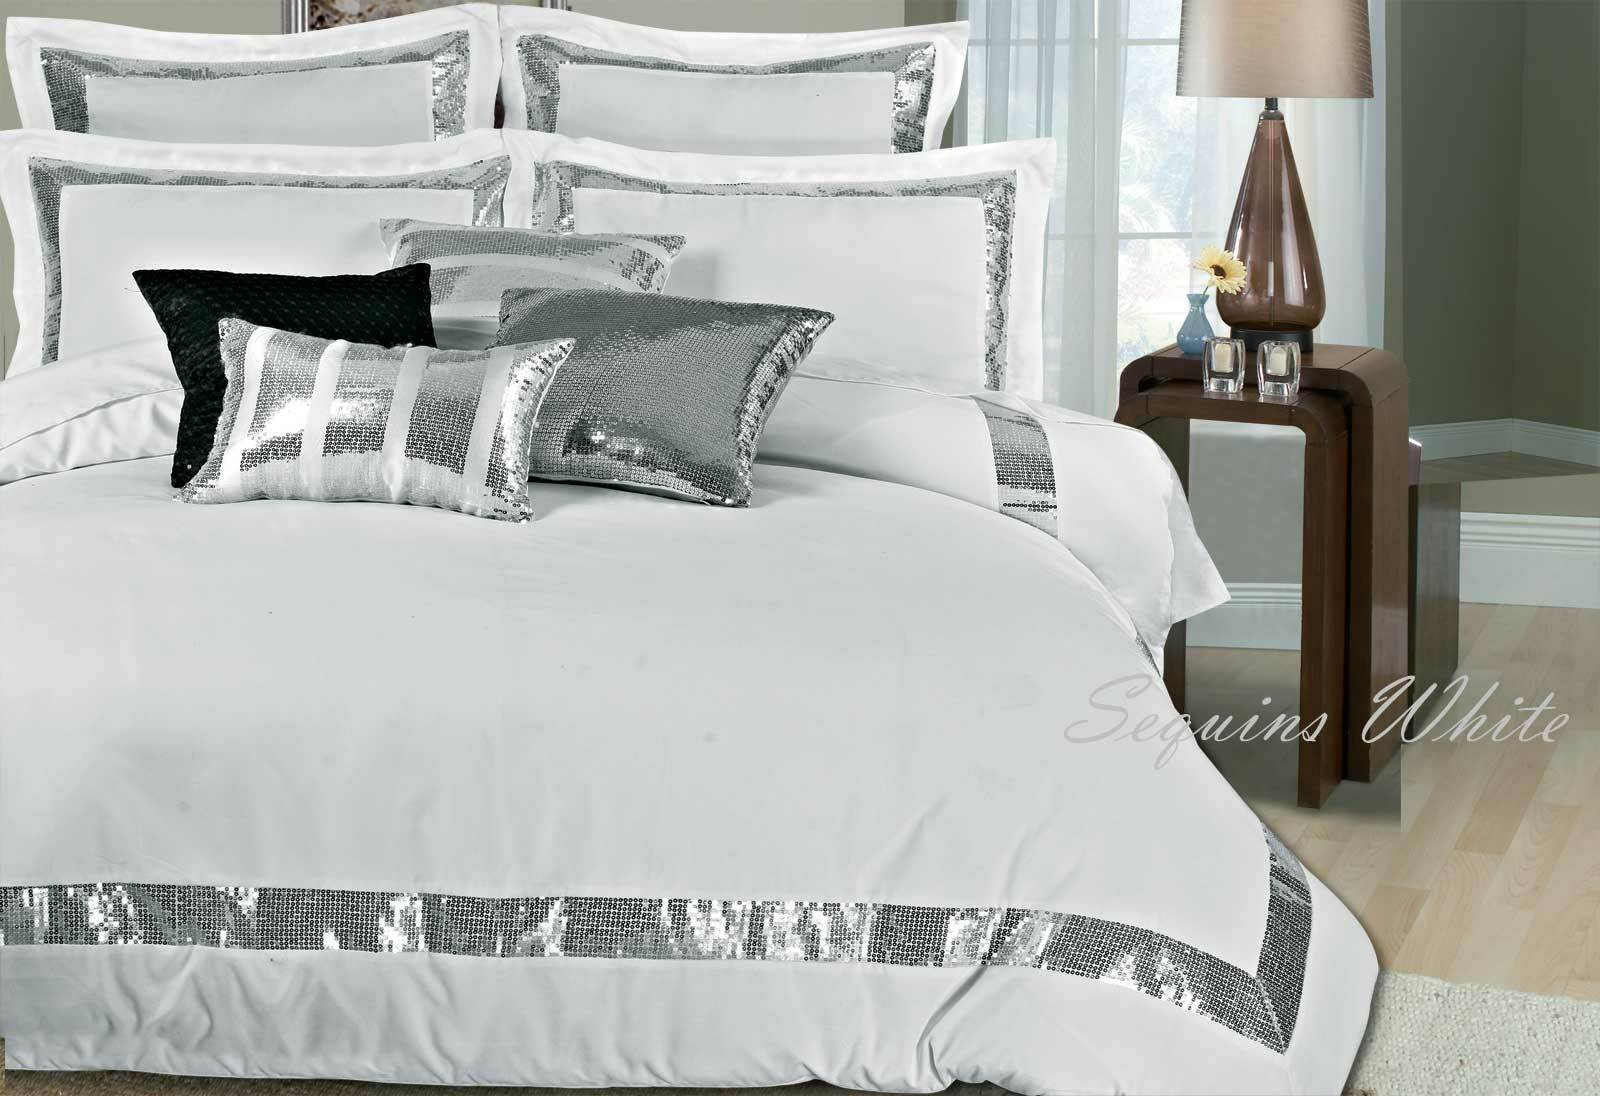 Sequins White Duvet Quilt Cover Set Super King King